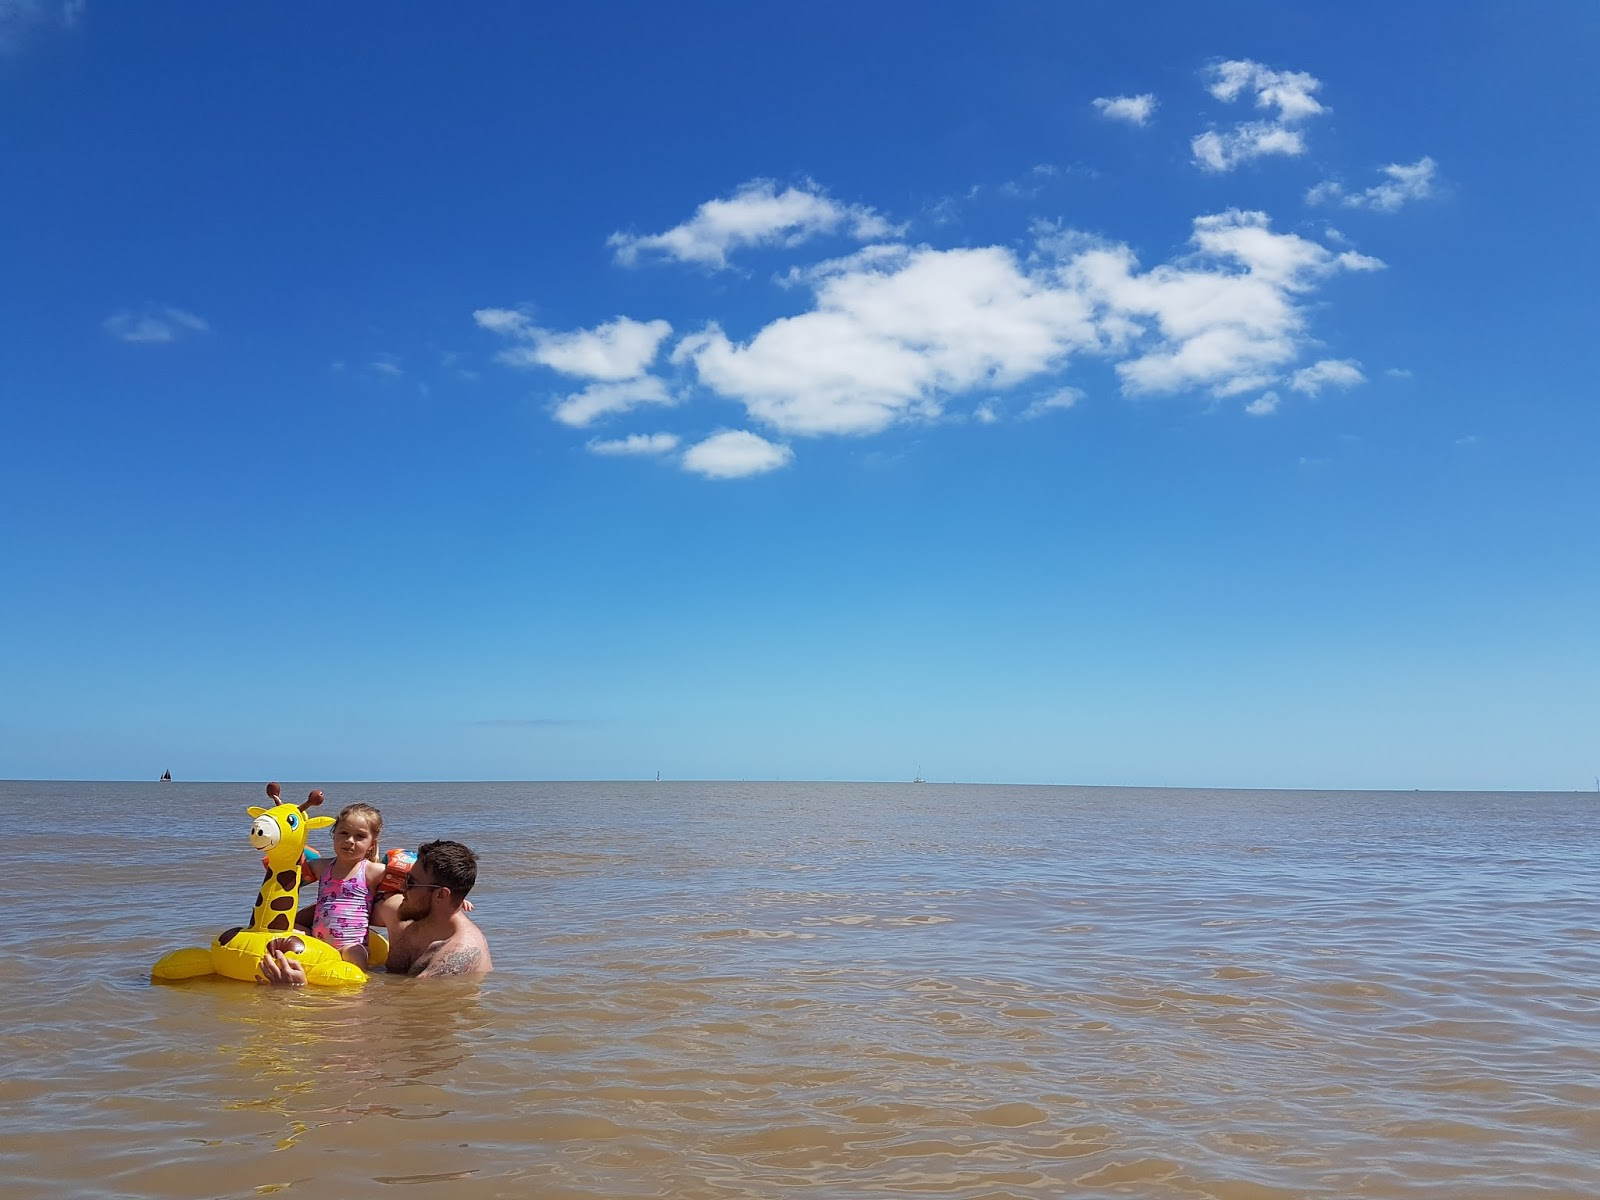 dad and daughter in the sea with giraffe float